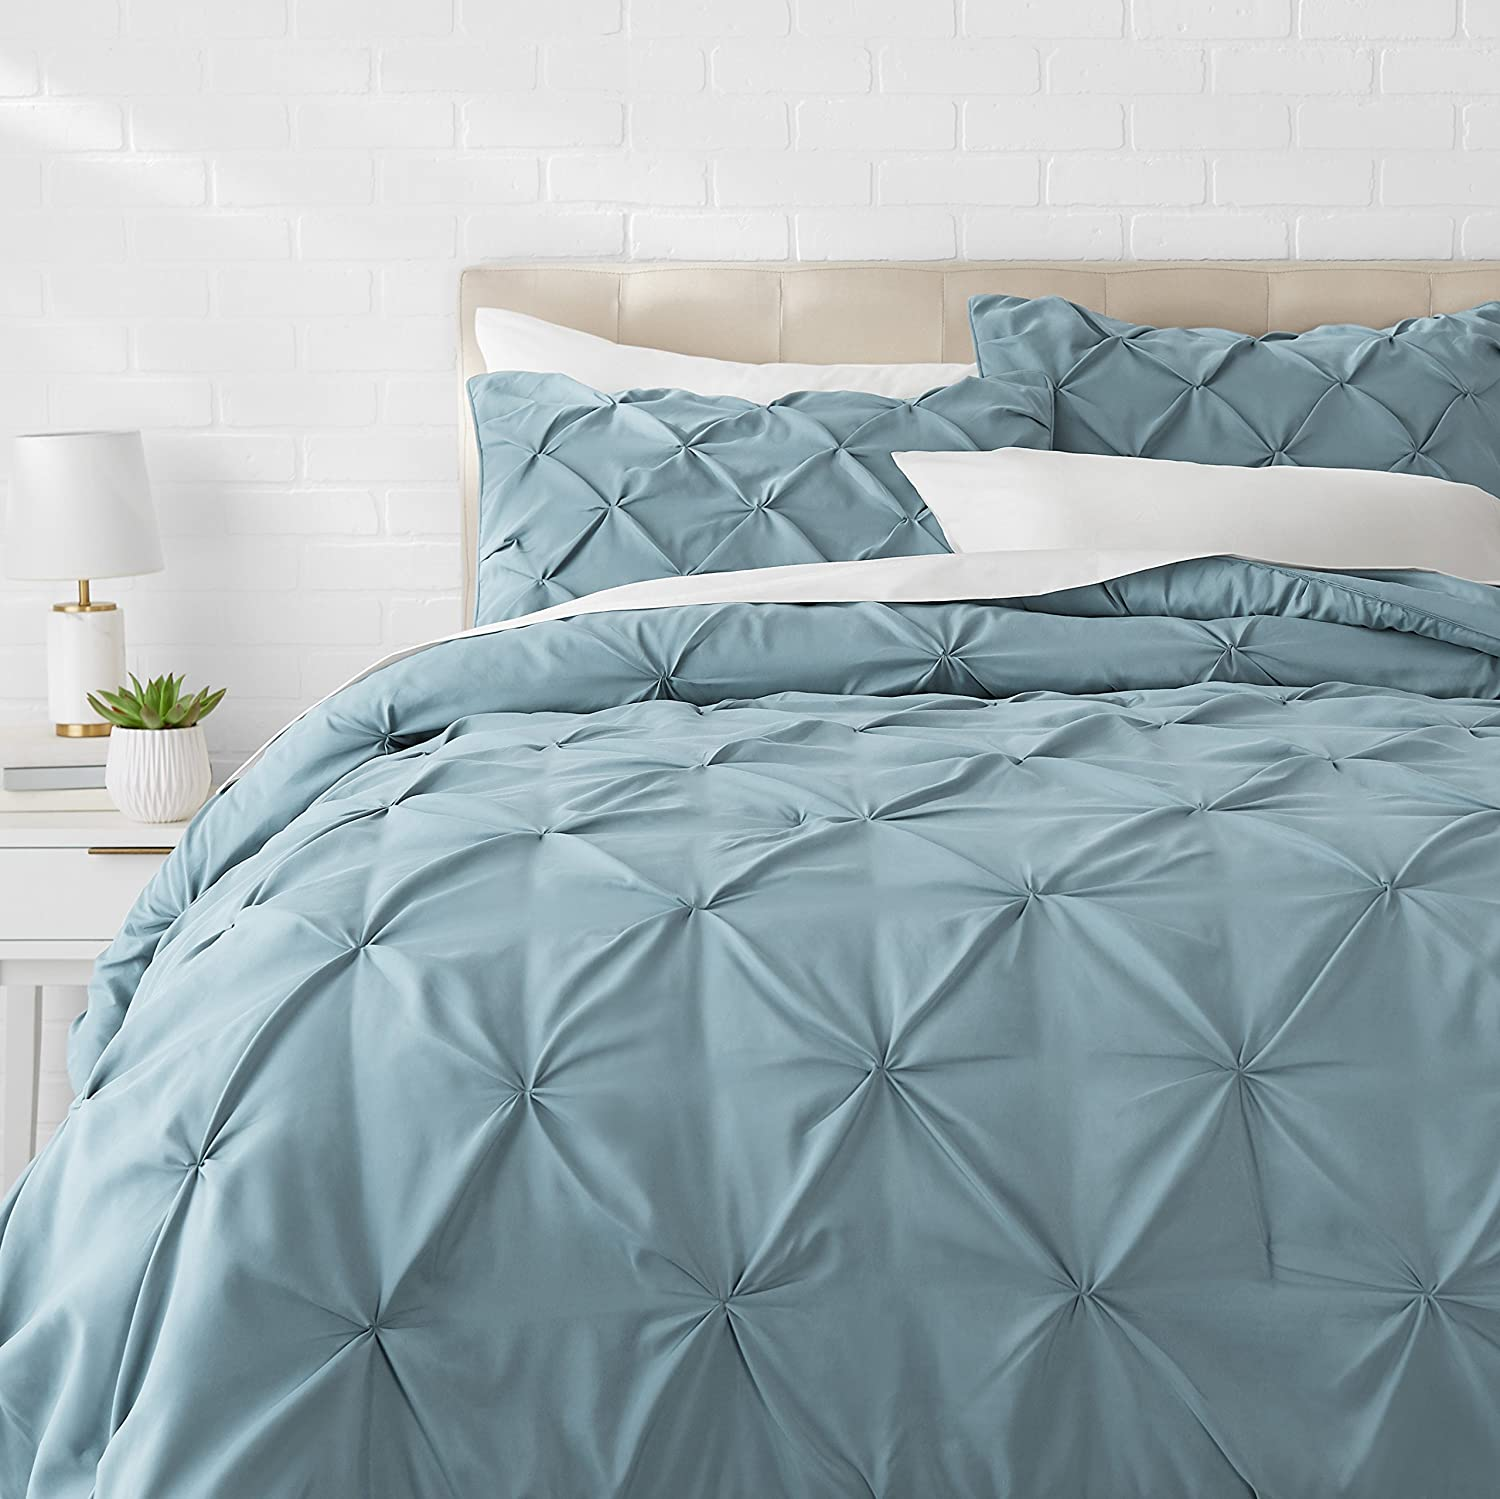 AmazonBasics Pinch Pleat Comforter Set - Full/Queen, Spa Blue